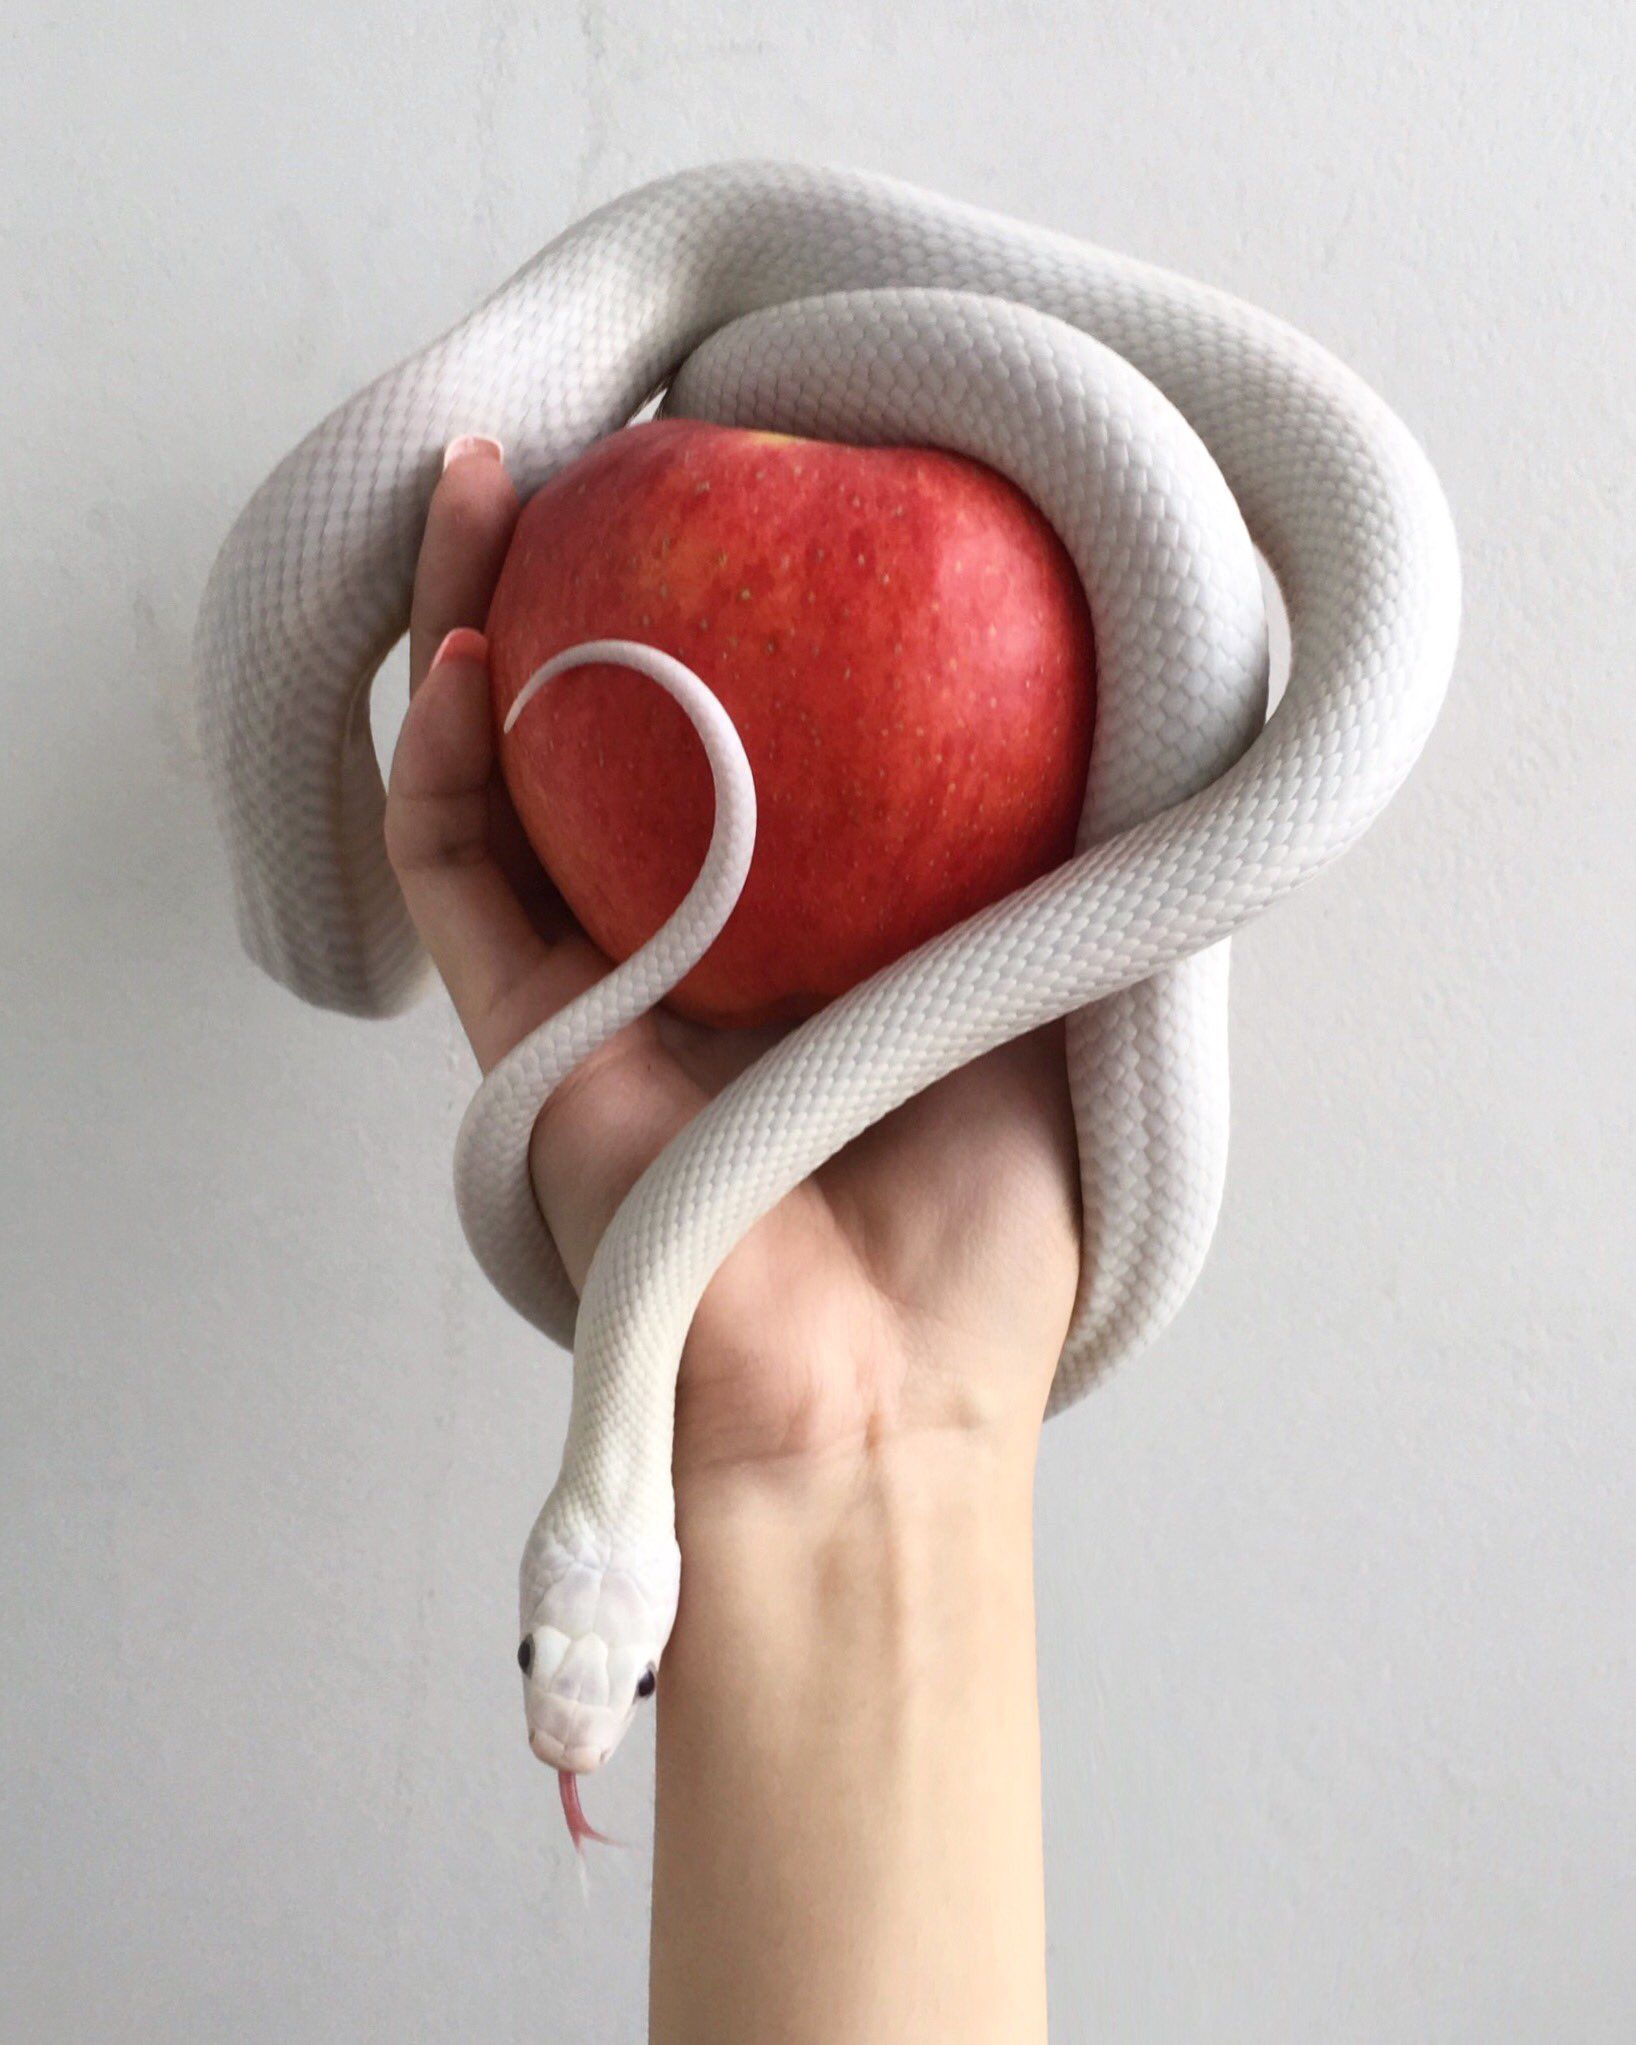 Pin by محمدي on Pic mix Cute snake, Cute reptiles, Pet snake